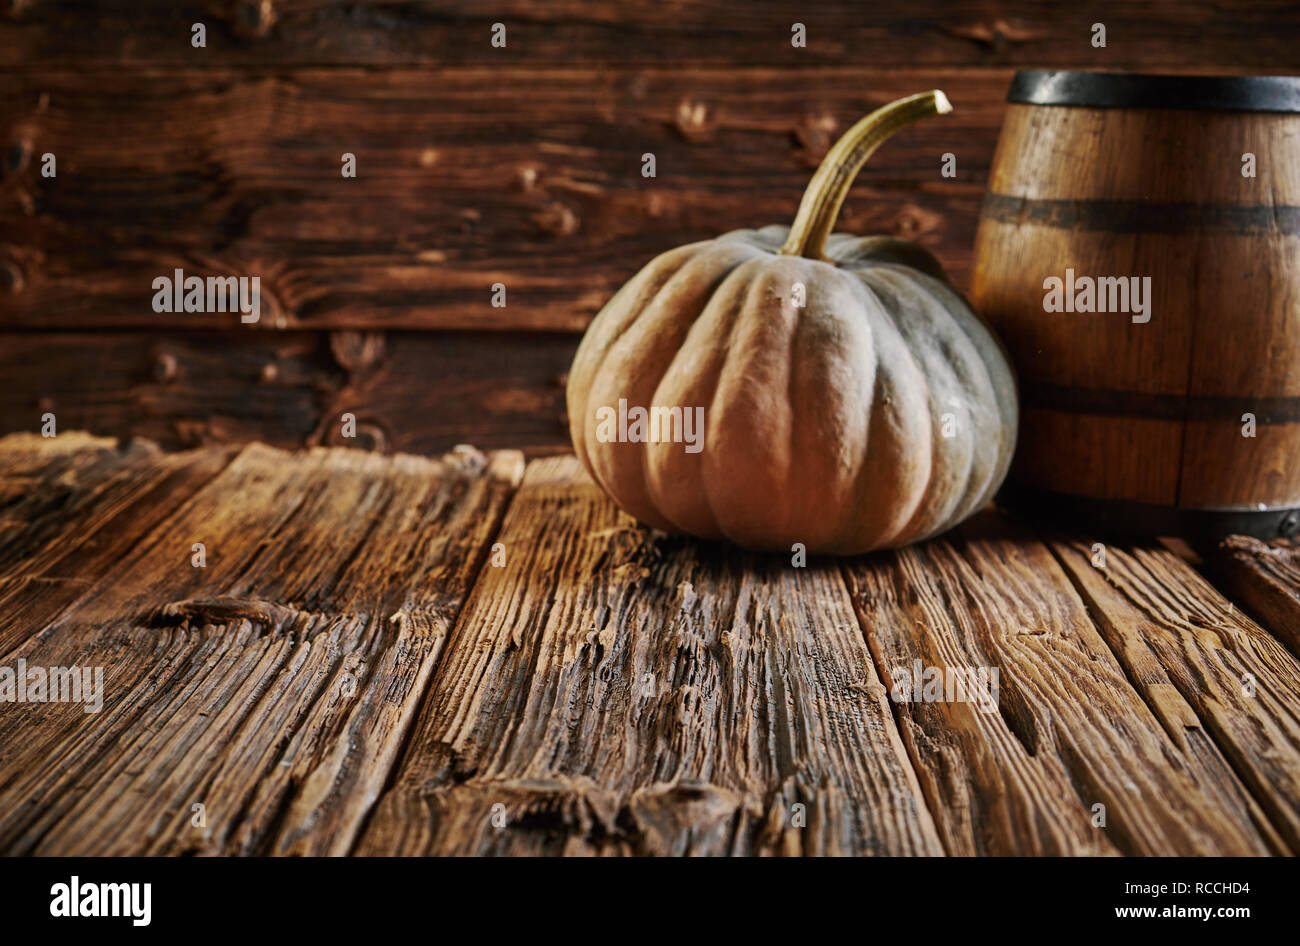 Big pumpkin and oak barrel in wooden house room on table with old harsh woodgrain surface. Rustic harvest concept in brown with copy space - Stock Image